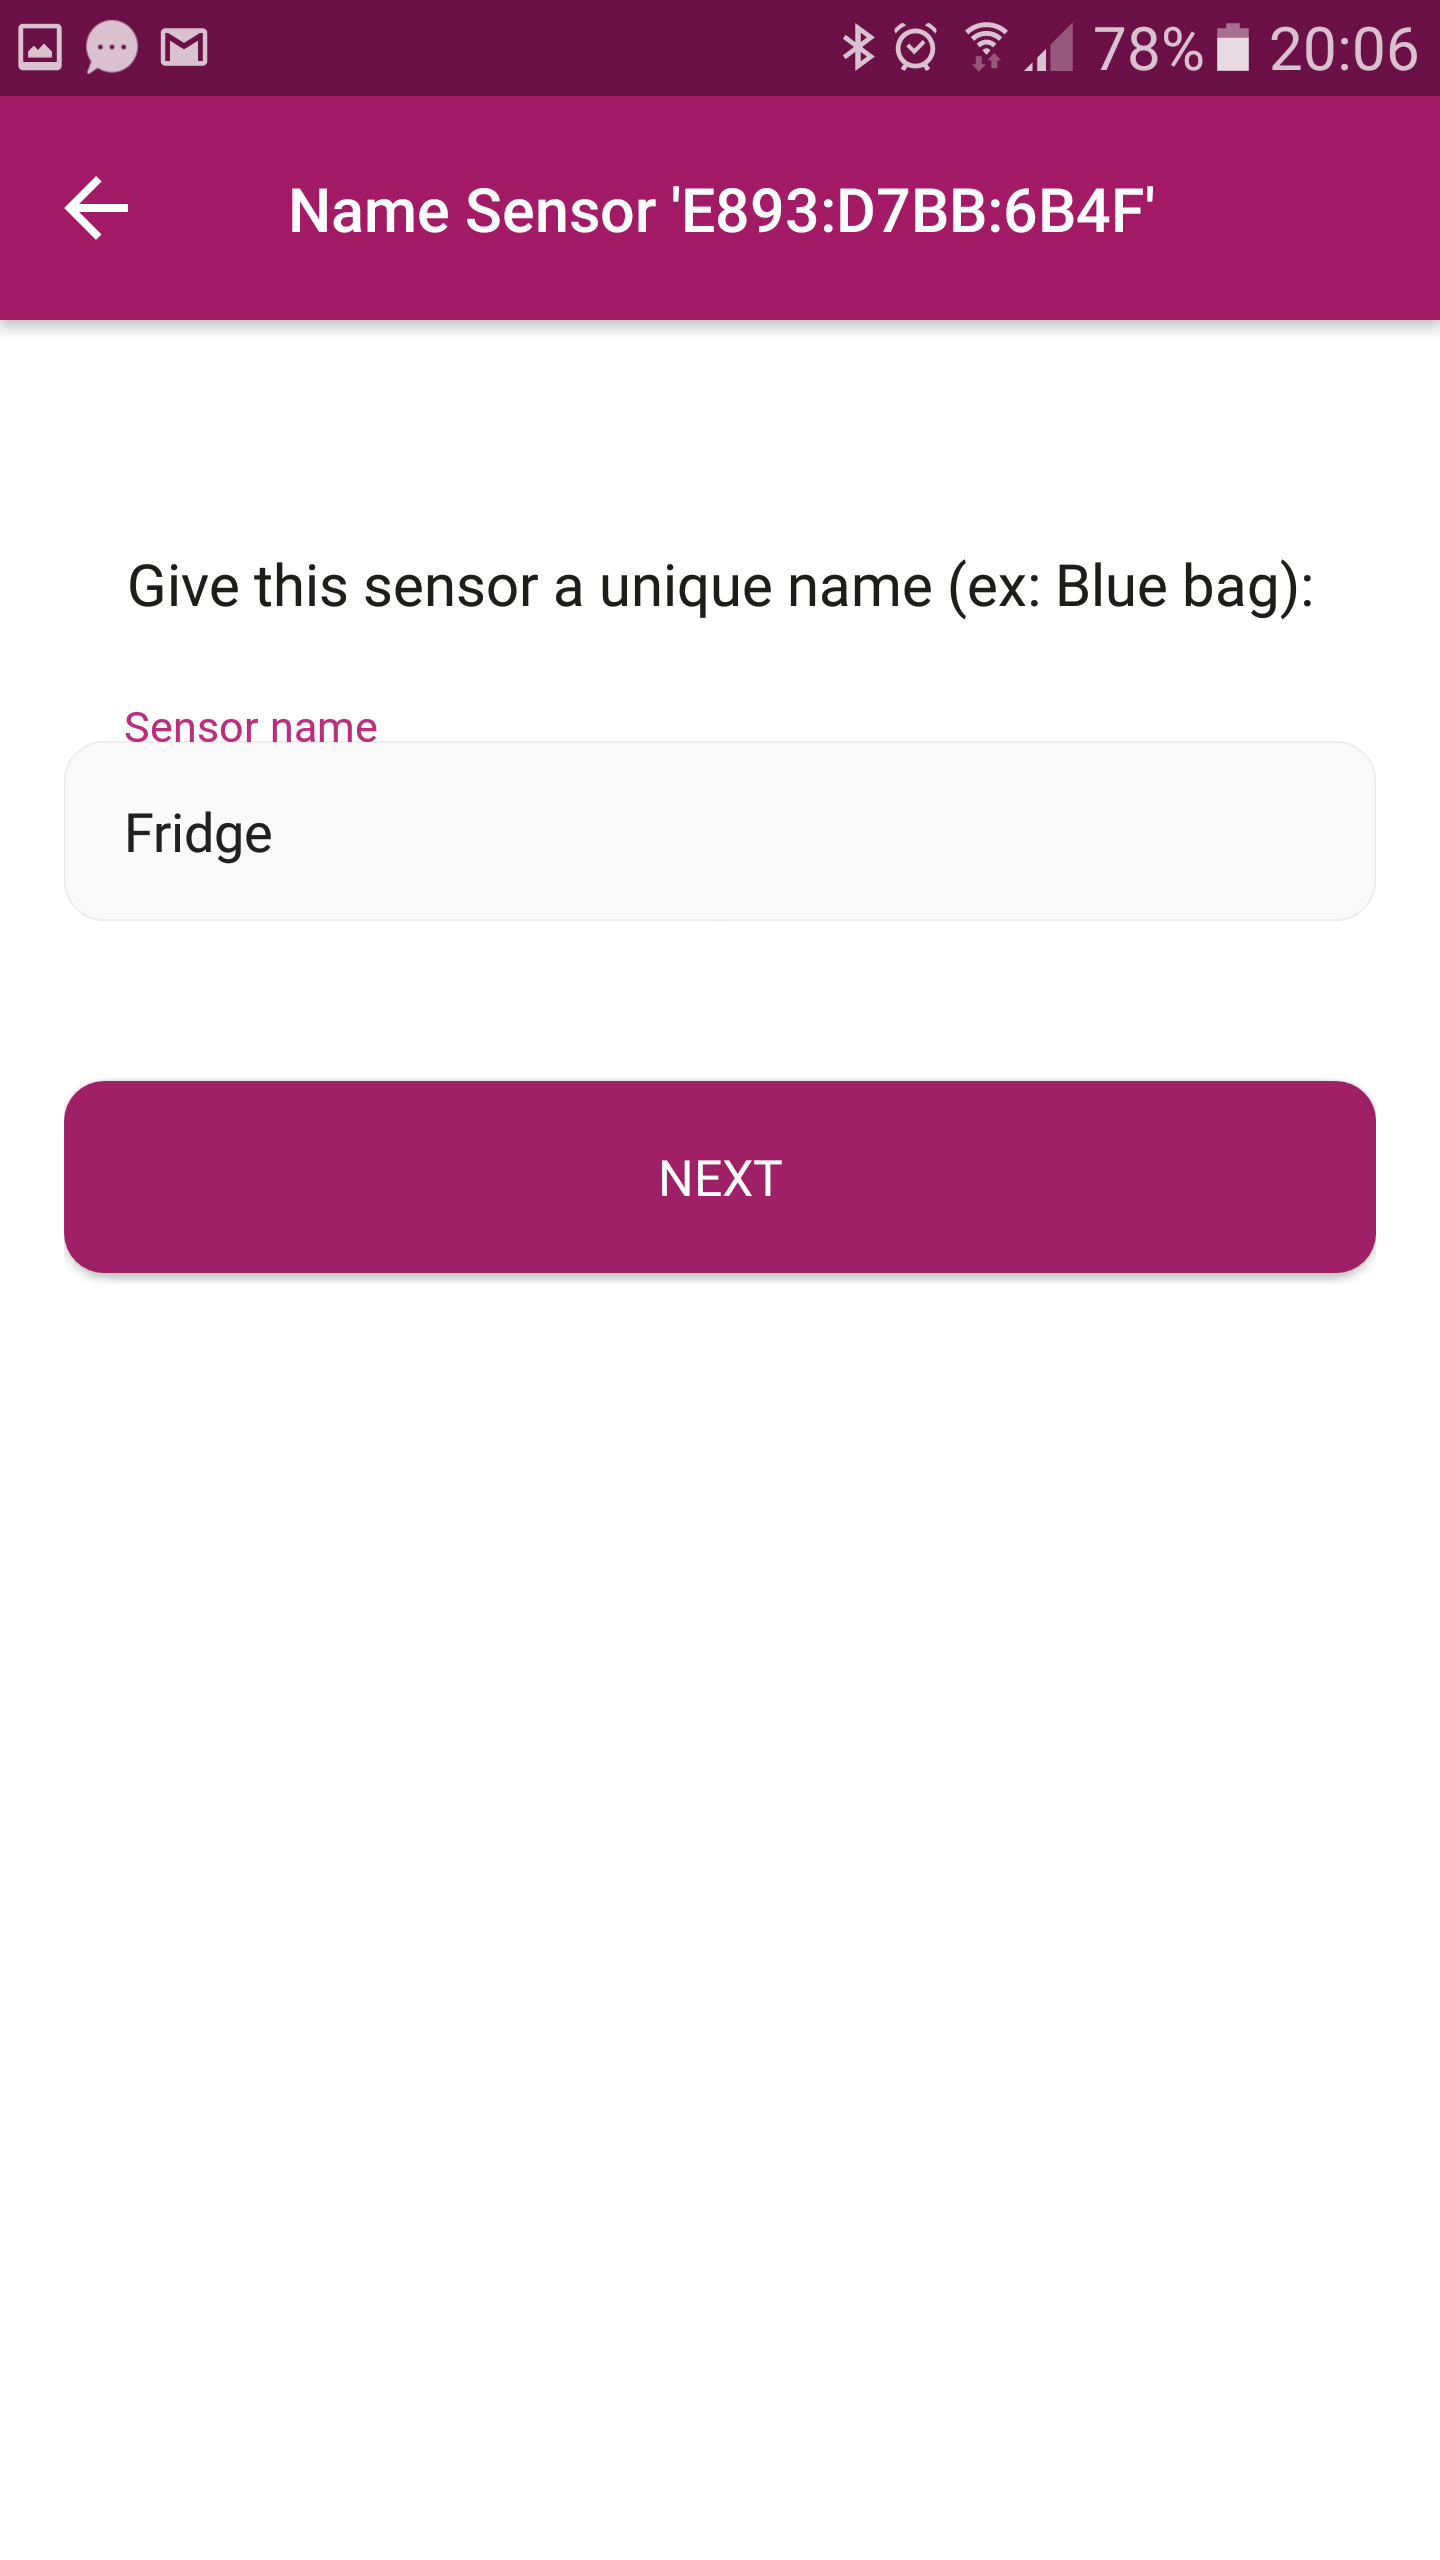 You can rename the sensor, handy if you have one in the fridge and one in your kit bag